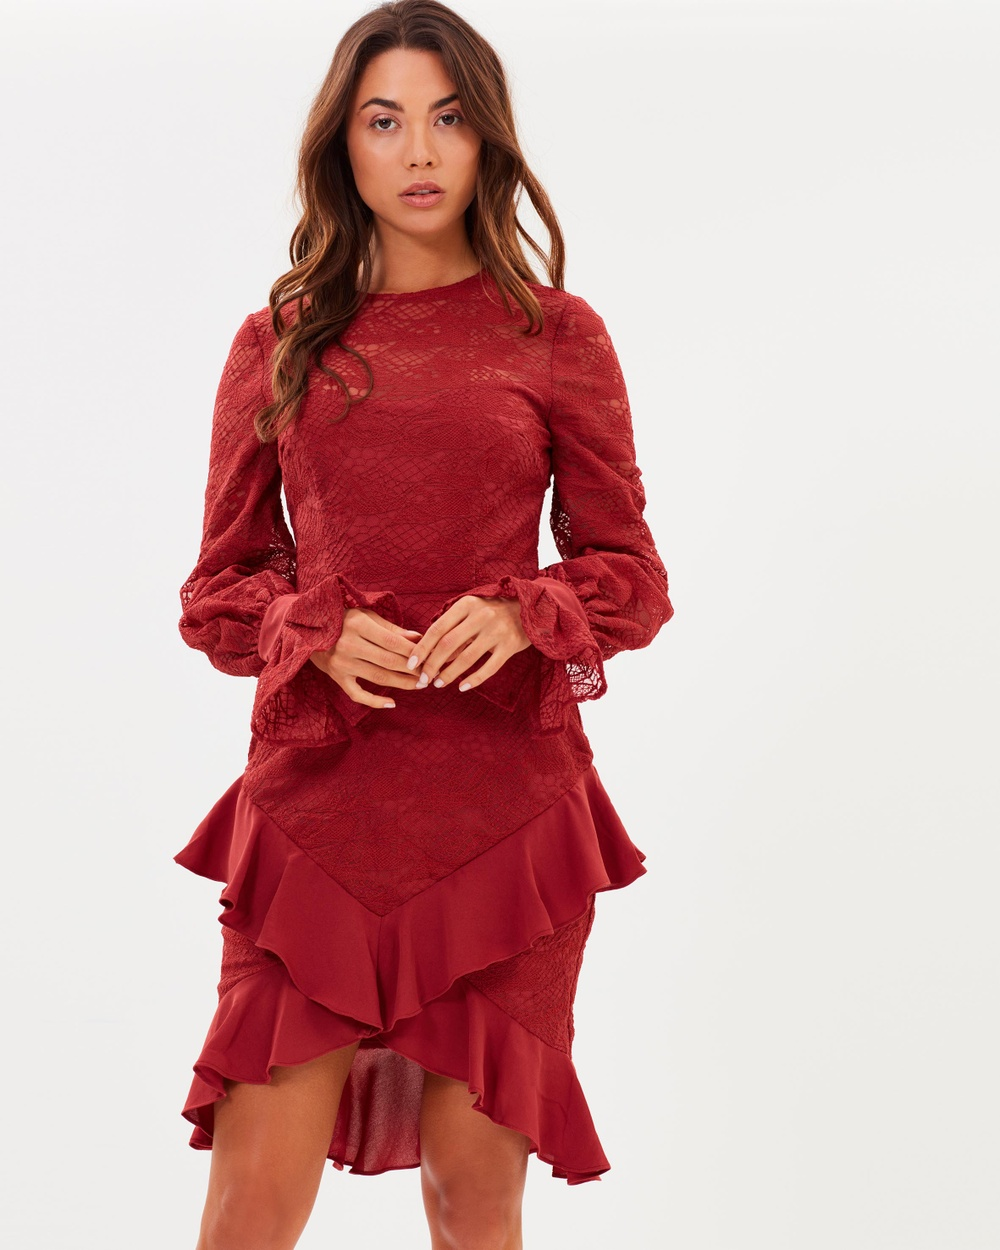 Cooper St Amore Long Sleeve Dress Dresses Rosewood Amore Long Sleeve Dress